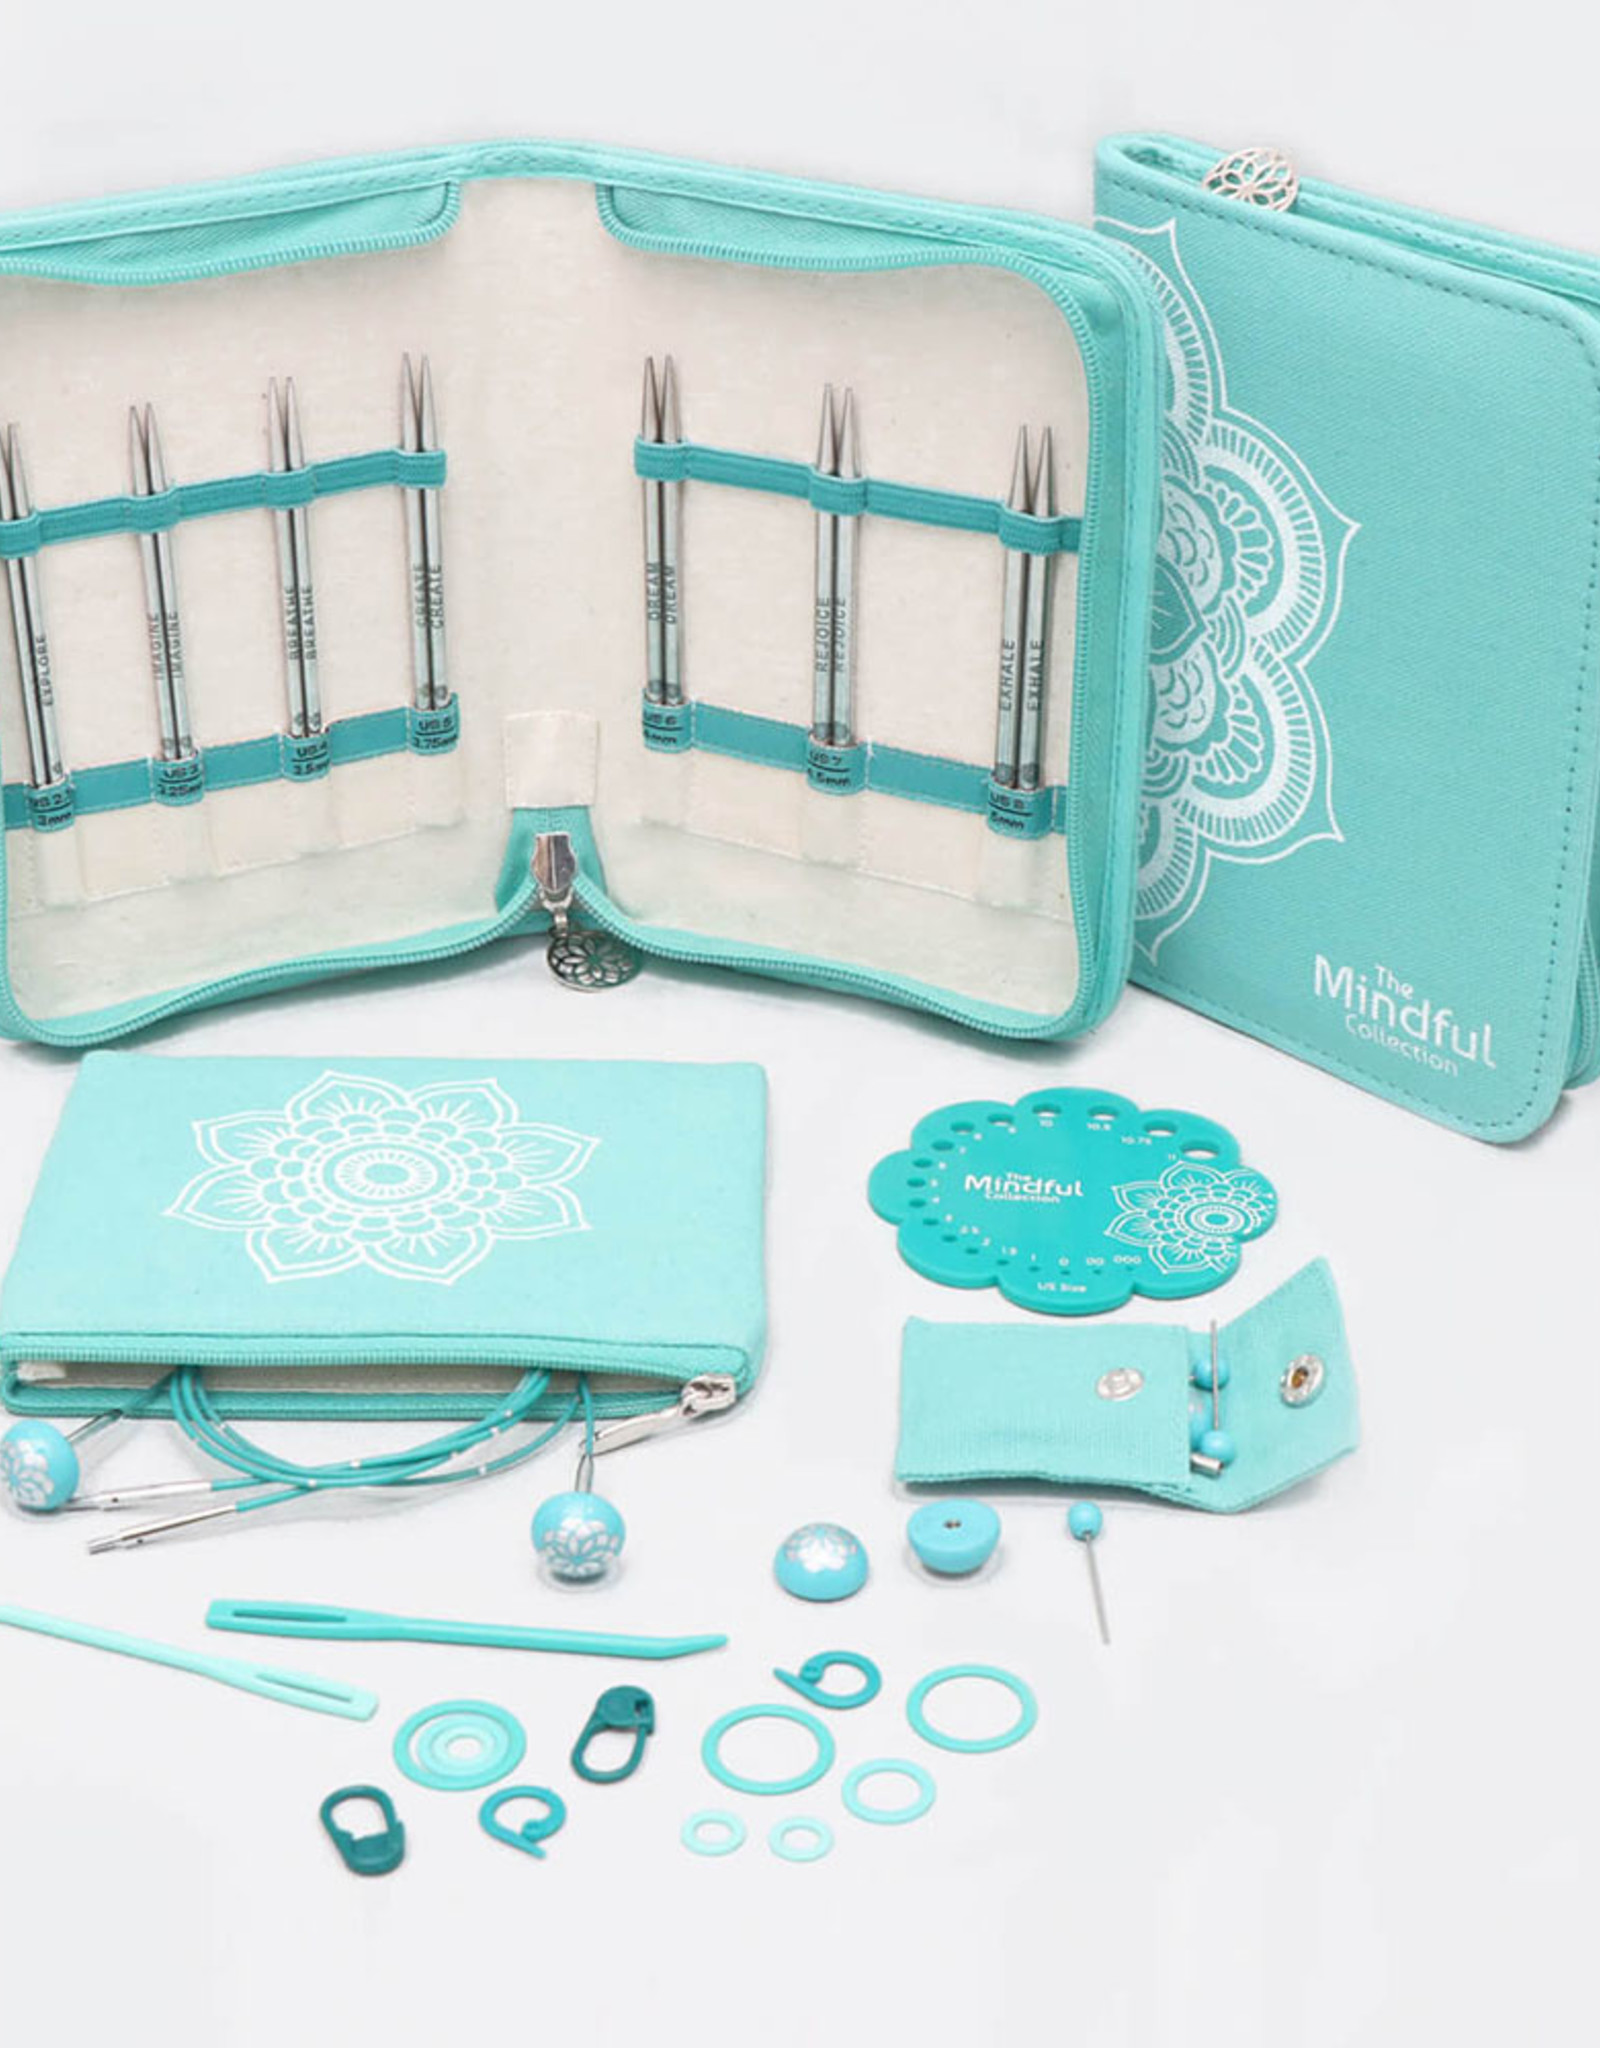 Knitters Pride Mindful - Believe - Interchangeable Needle Set 5inch (Small)